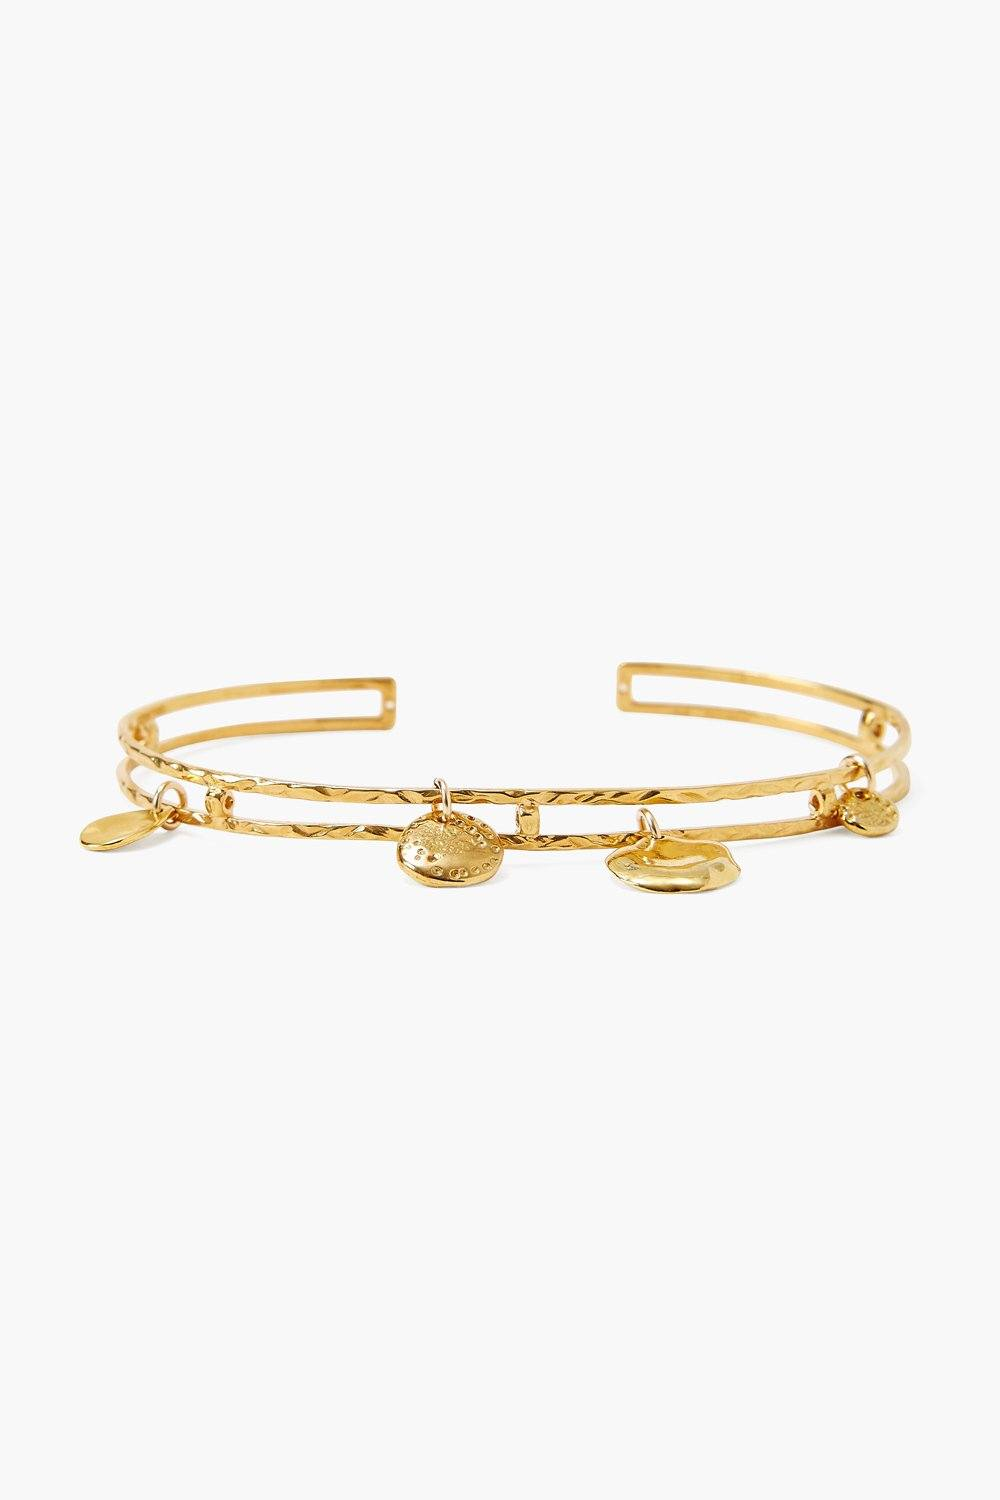 Yellow Gold Charmed Cuff